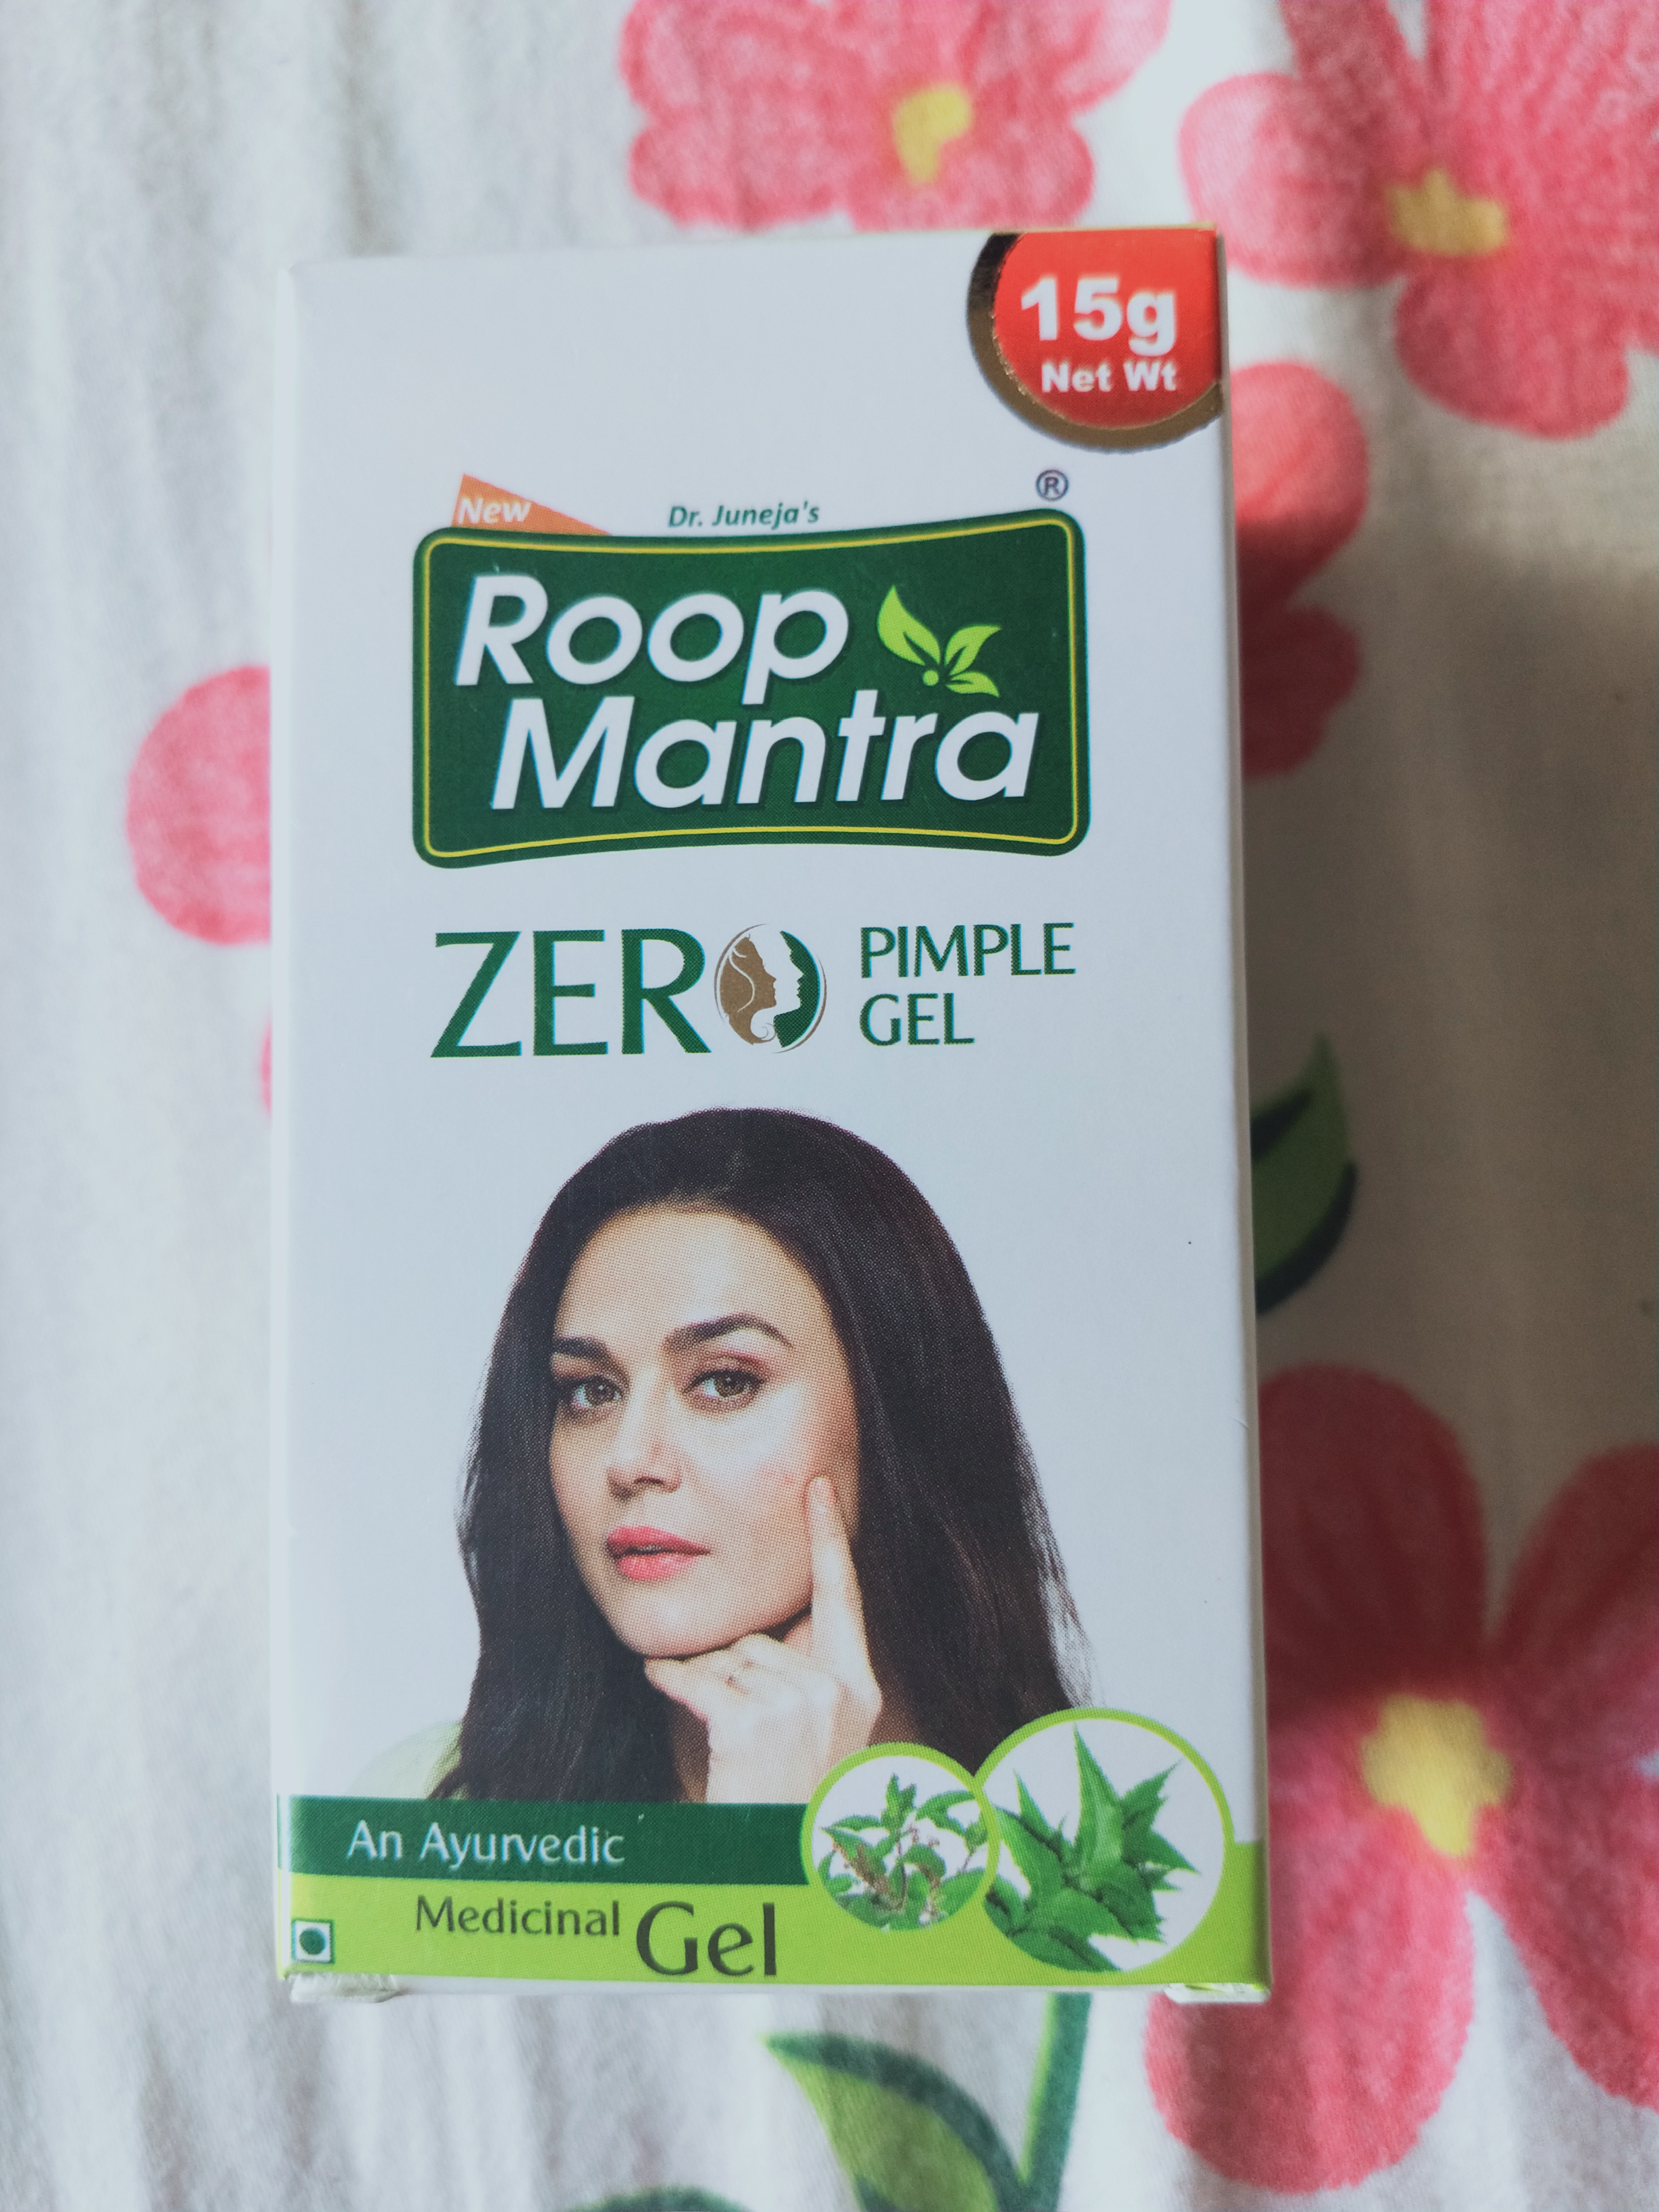 Roop Mantra Zero Pimple Gel -Effective gel to remove pimple-By anuja_pundir